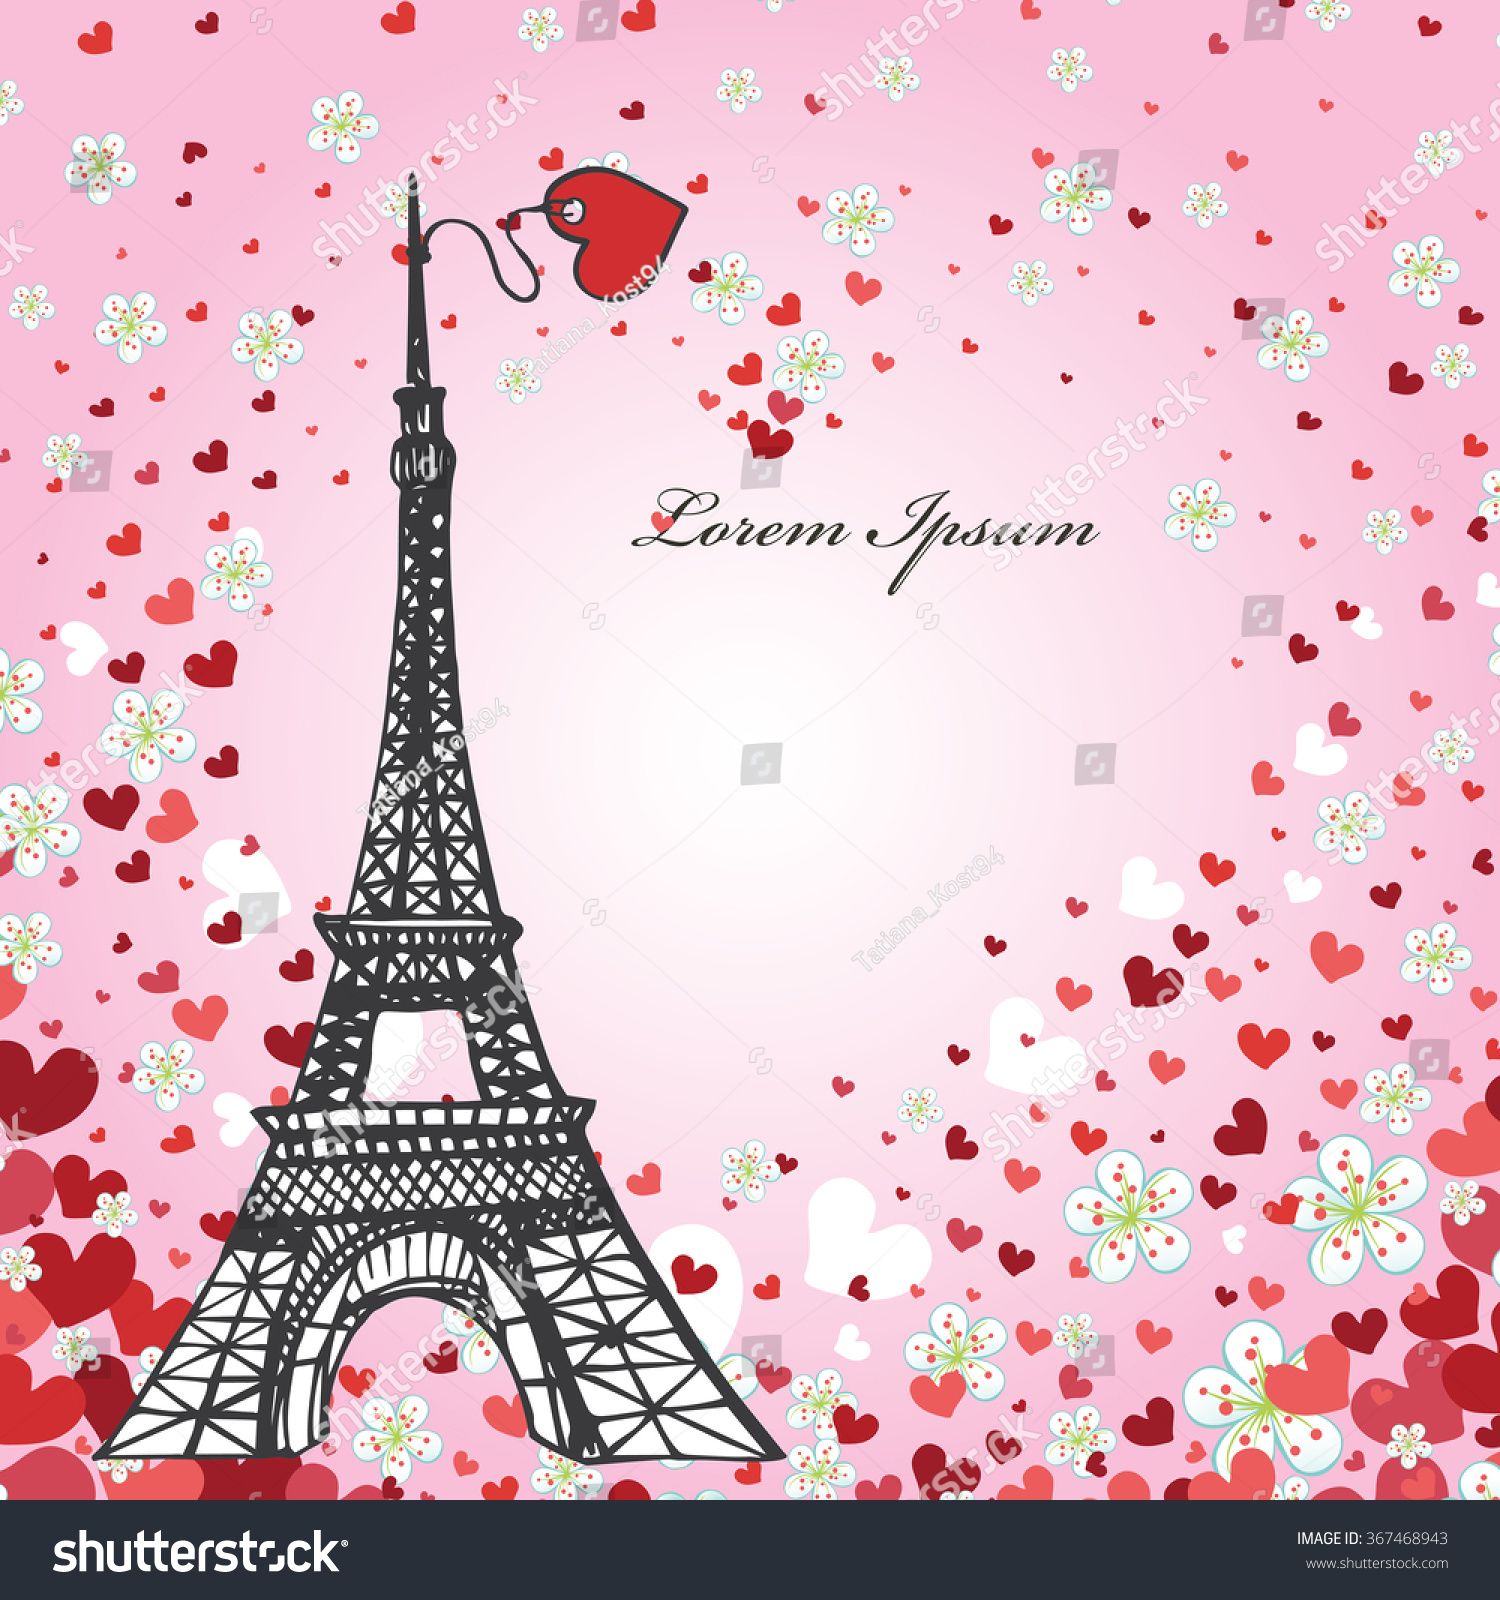 Paris Love BackgroundVintage Valentine Wedding Design Template With Falling Hearts Flowers